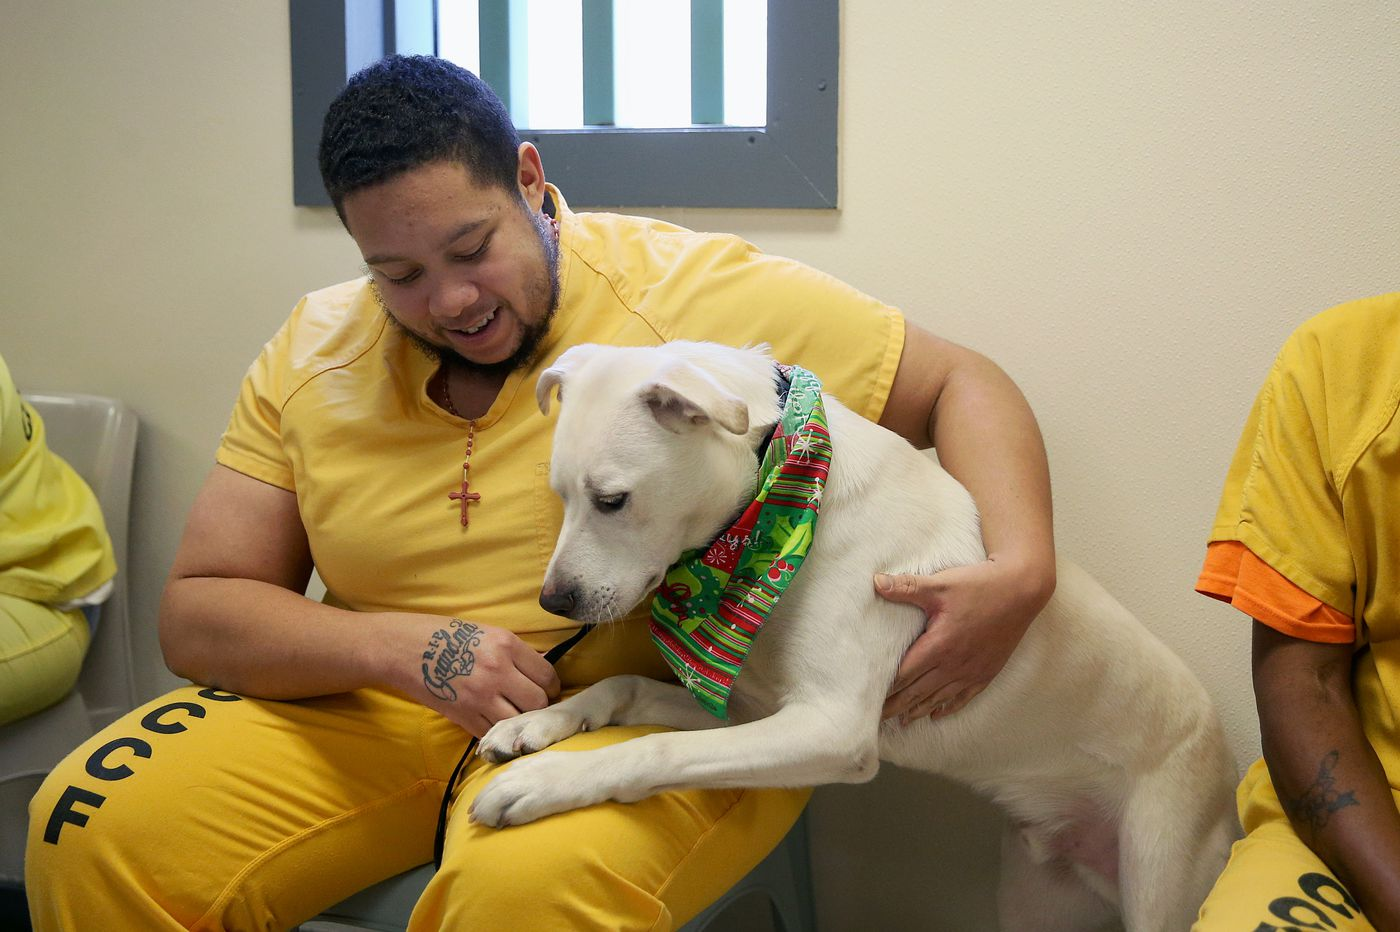 Love at first sight: South Jersey inmates are helping train service dogs for veterans